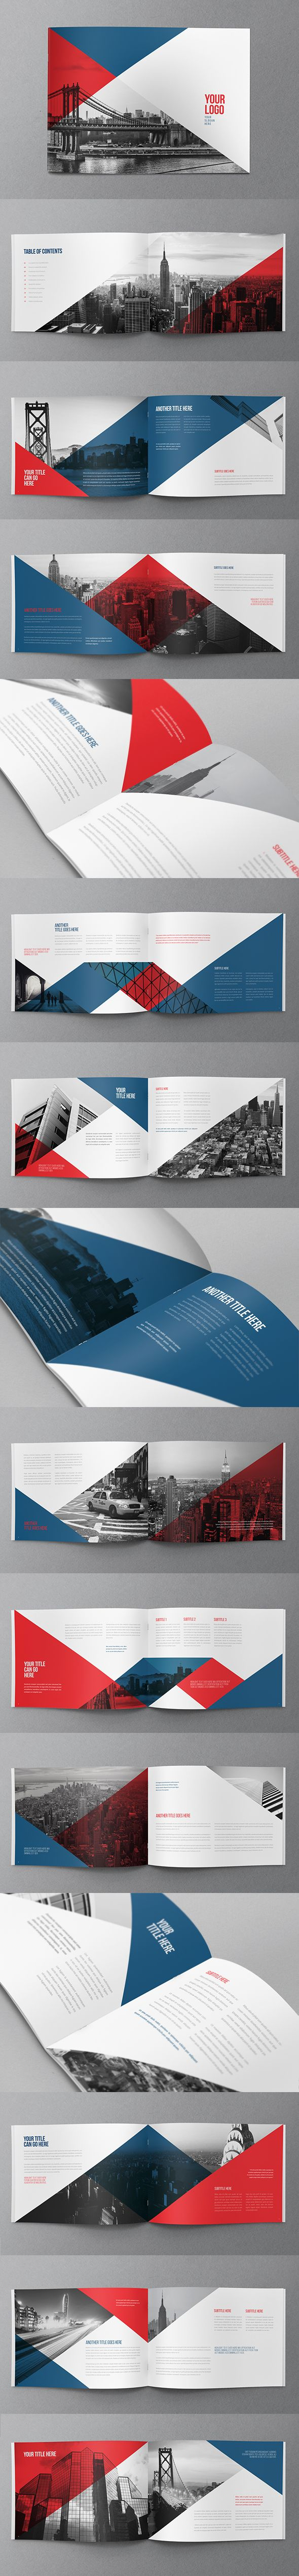 Modern design, angles across spreads |||| Modern American Brochure. Download here: http://graphicriver.net/item/modern-american-brochure/11454850?ref=abradesign #brochure #design